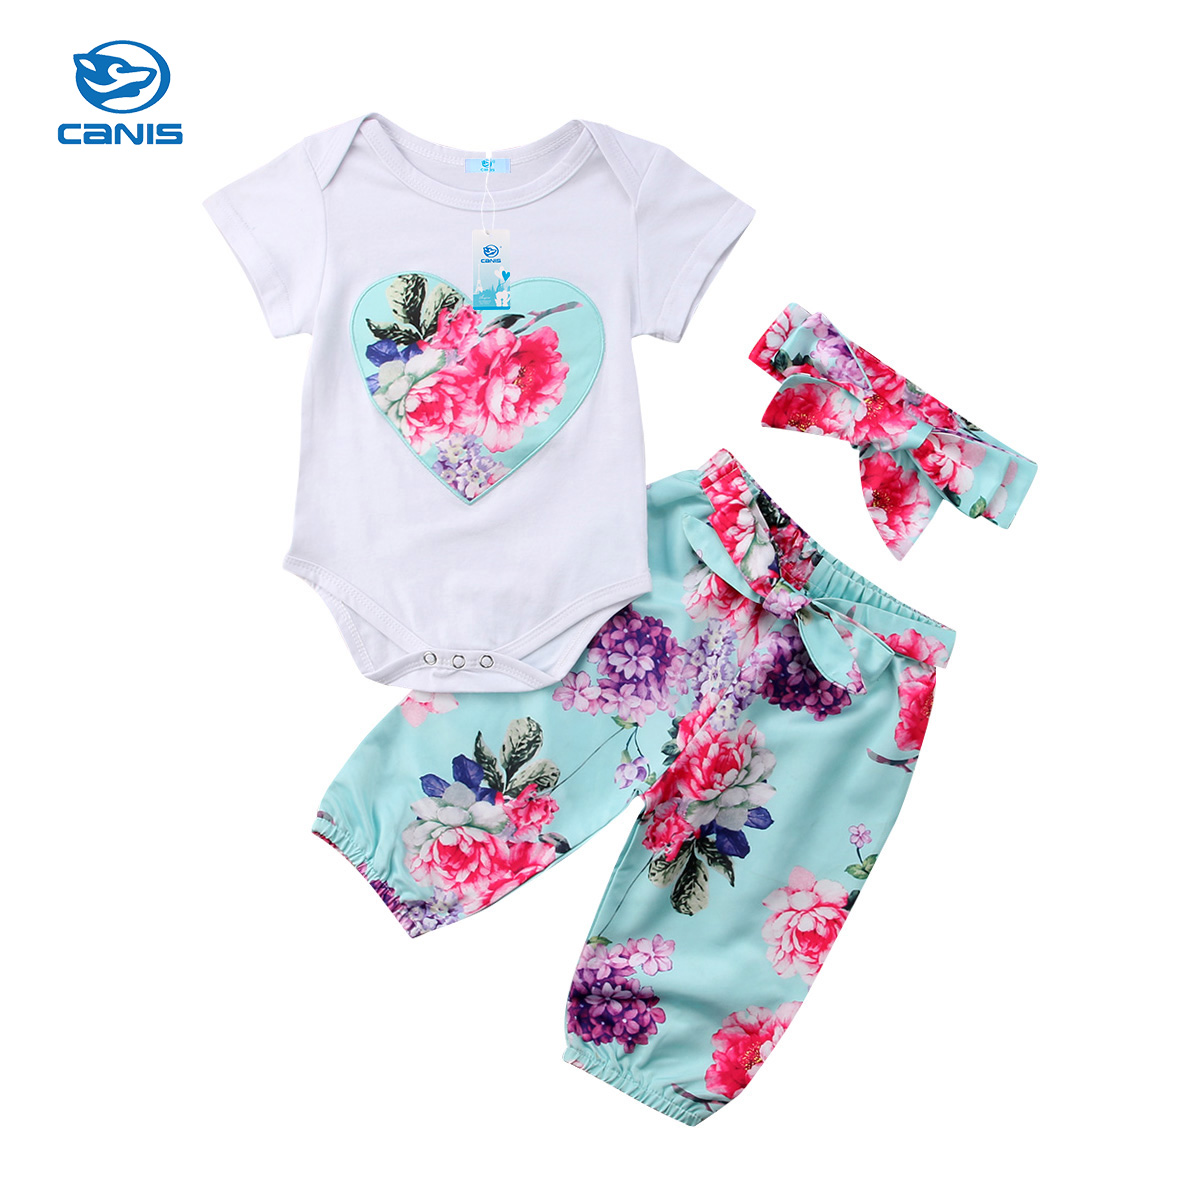 3Pcs Baby Girls Clothes Newborn Baby Girl Floral Top Cotton Romper Floral Pants Legging Headband Outfit Clothes